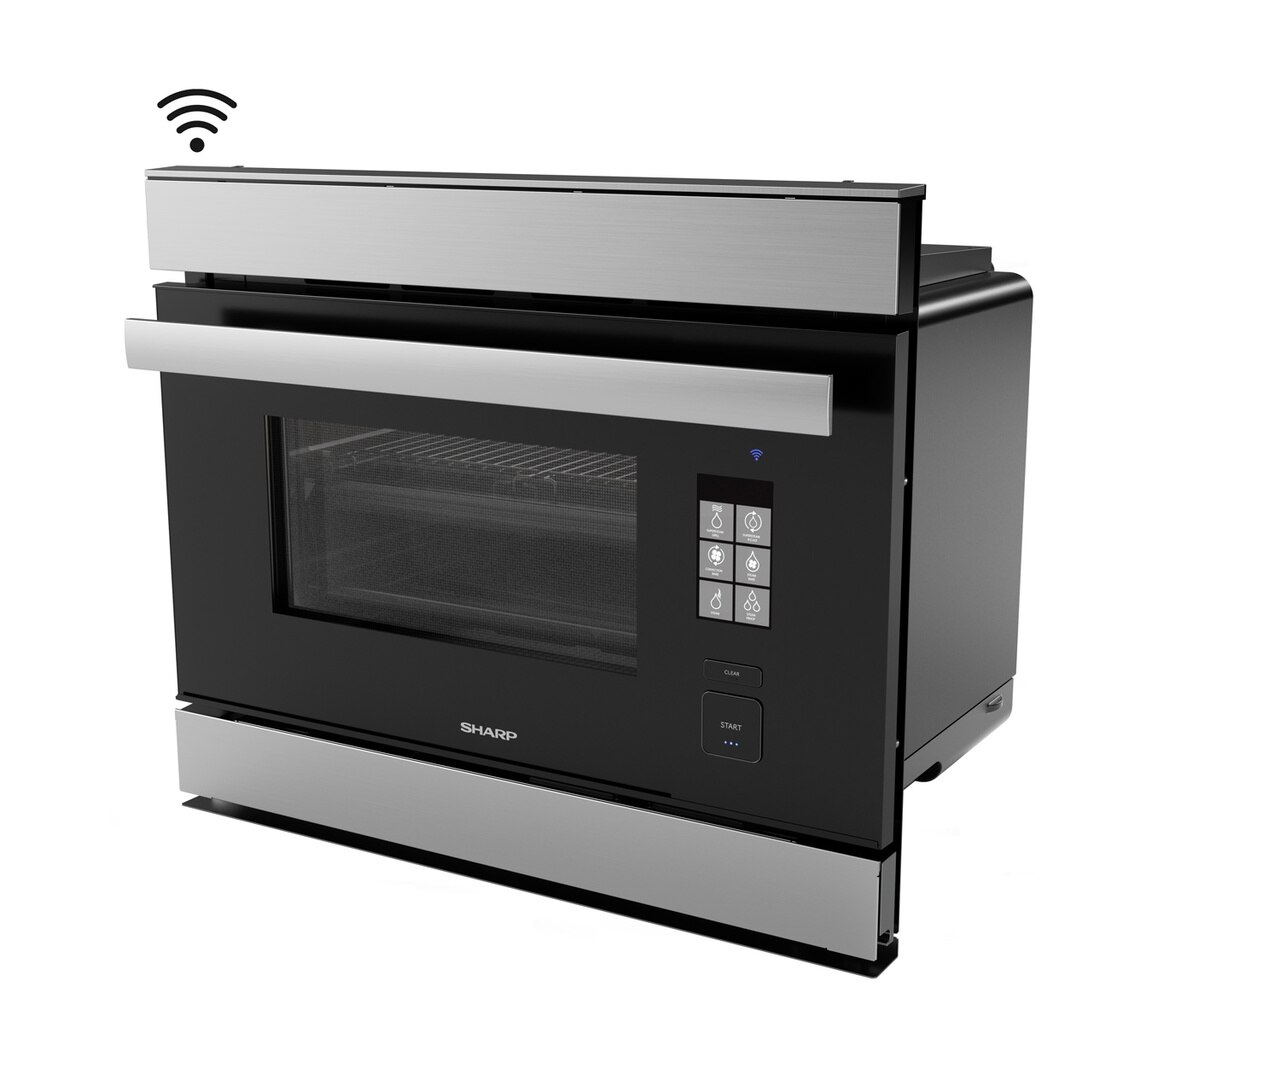 Left side view of the SuperSteam IoT Oven (SSC2489DS) - Sharp's Superheated Steam Oven